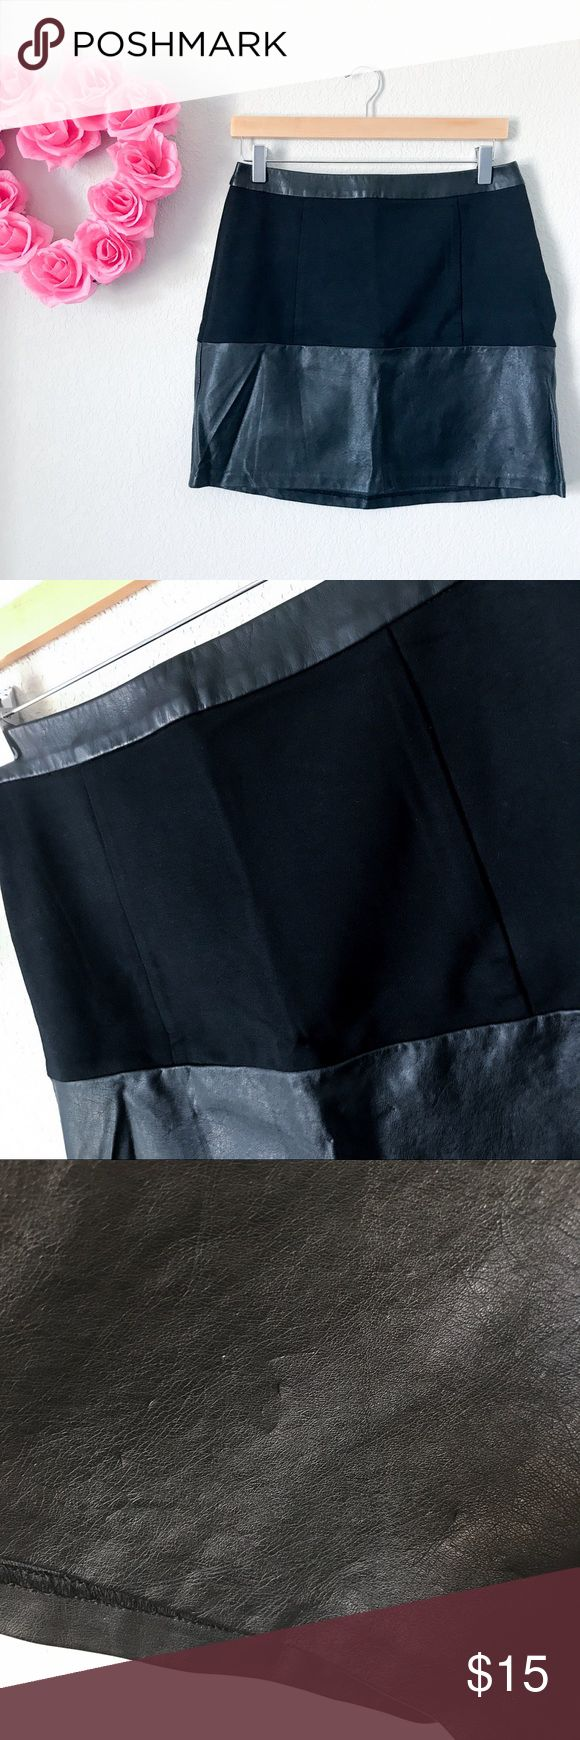 The Limited Faux Leather Elastic Pencil Skirt Preloved but still in good condition! There are some pressure marks on the front as you can see in pic 3, but nothing that wouldn't make it unwearable. Really edgy. Elastic around the hips. Size 4. Made in Vietnam. 65% Viscose Rayon, 26% Nylon, 9% Spandex. Faux Leather is 100% Viscose. Measurements: Length:16inch Waist:14inch Hips:19inch The Limited Skirts Pencil